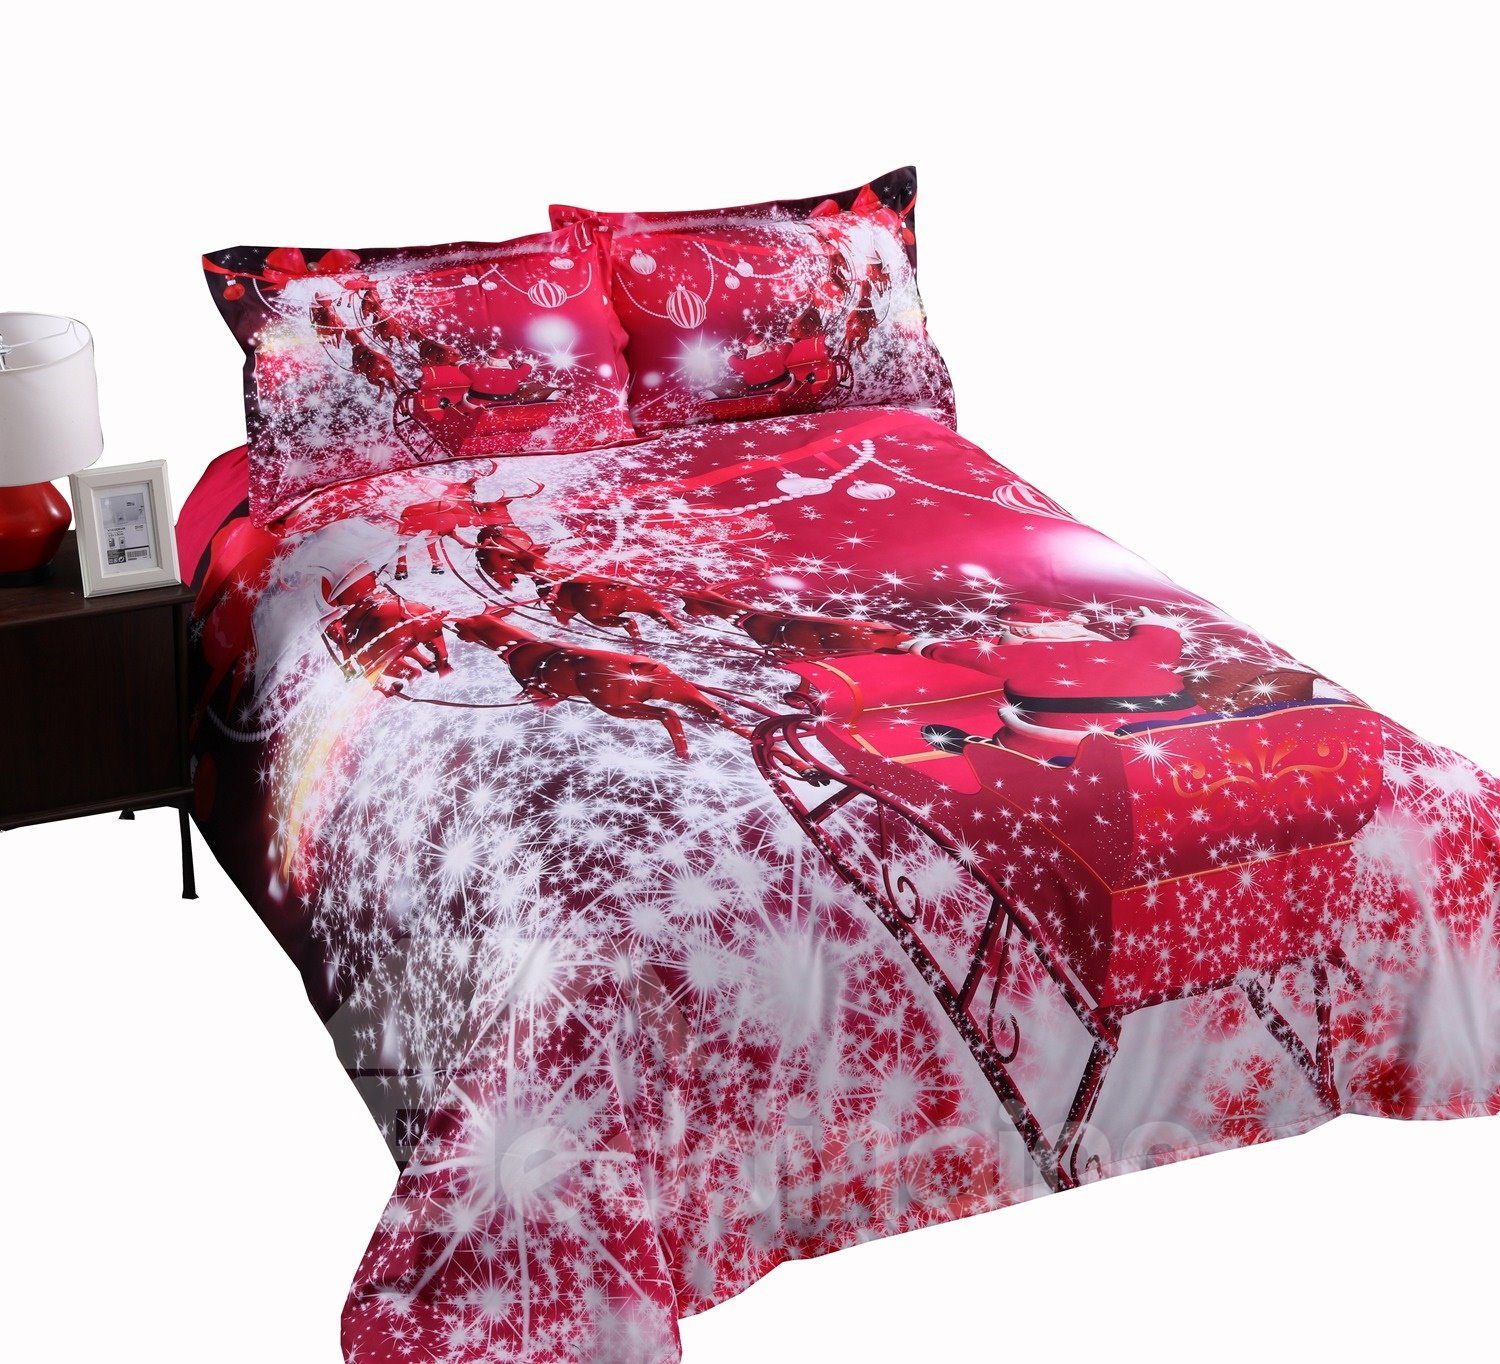 3D Santa Claus Riding Sleigh Printed Cotton 4-Piece Red Bedding Sets/Duvet Covers